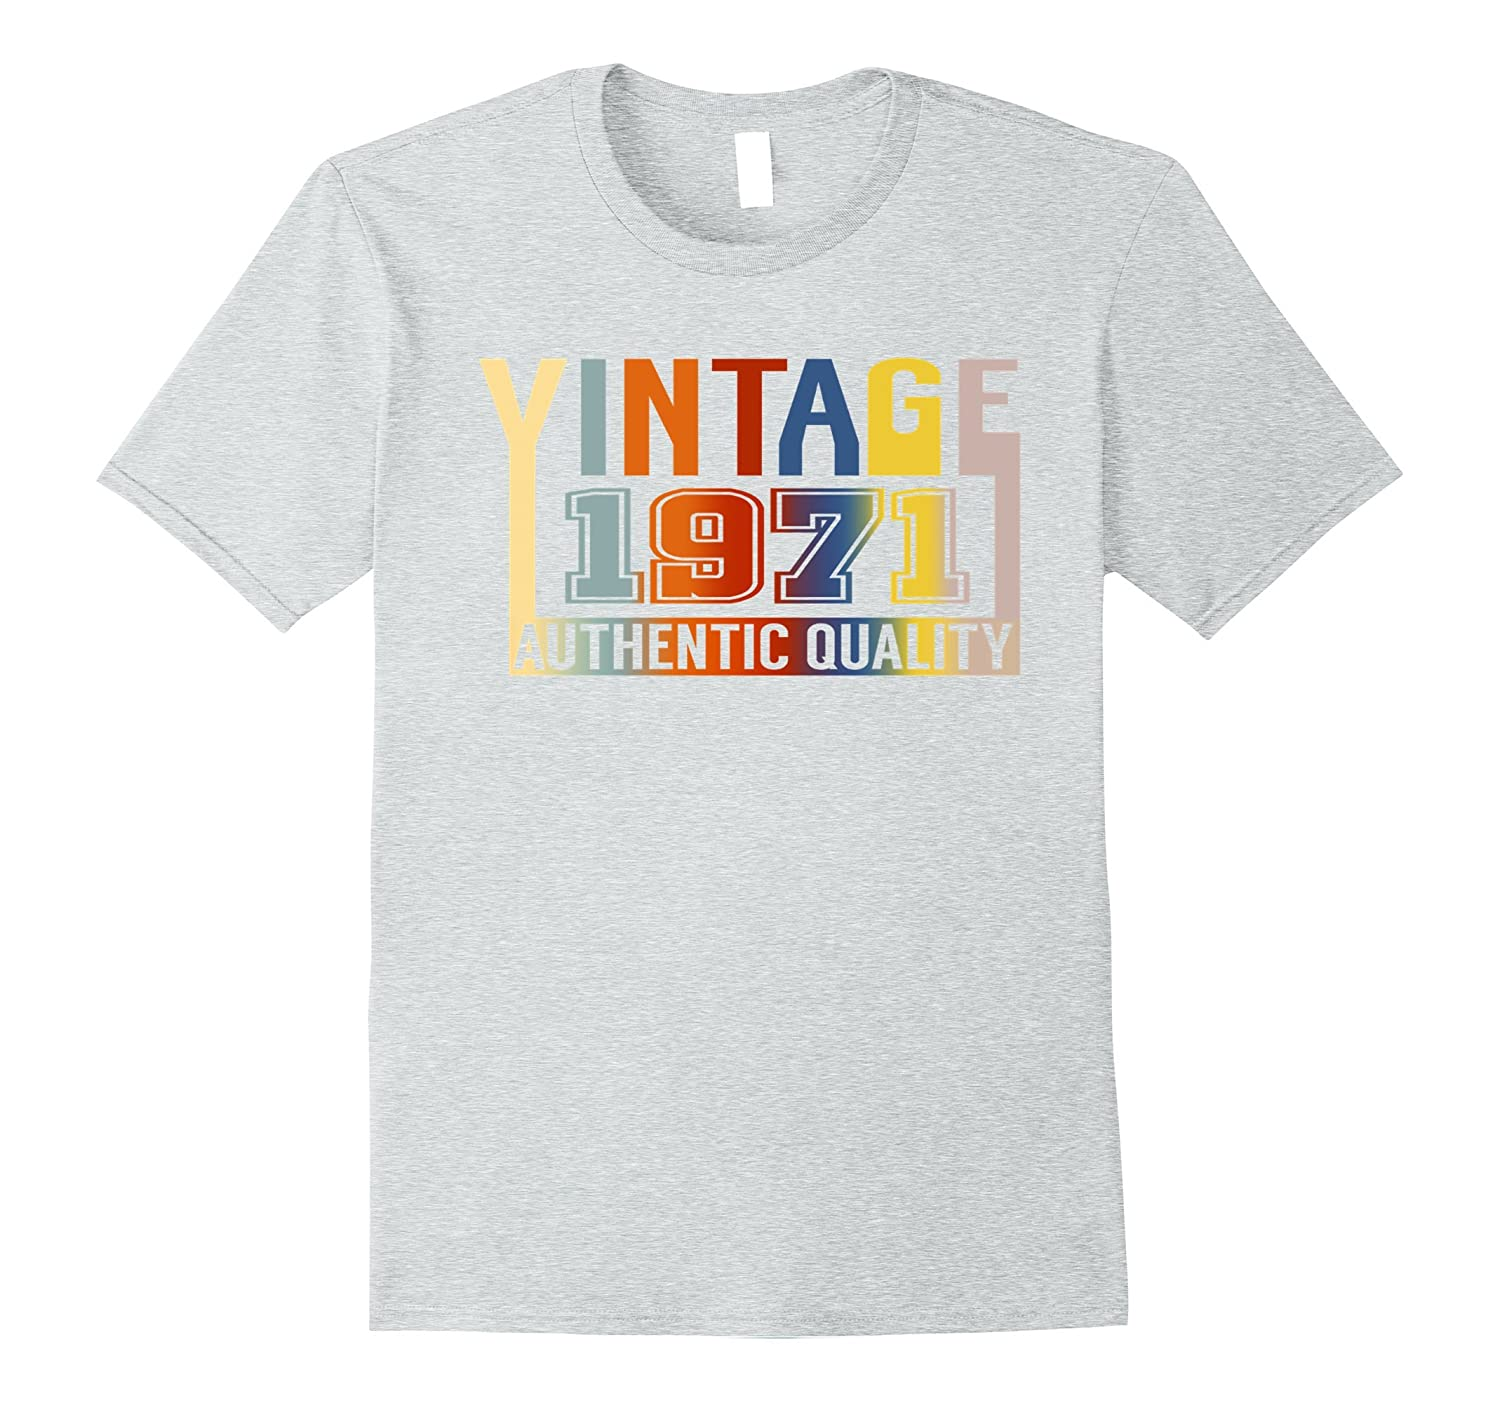 46th Birthday T-Shirt 46 Years Old Vintage 1971 Aged To Perfection Womens